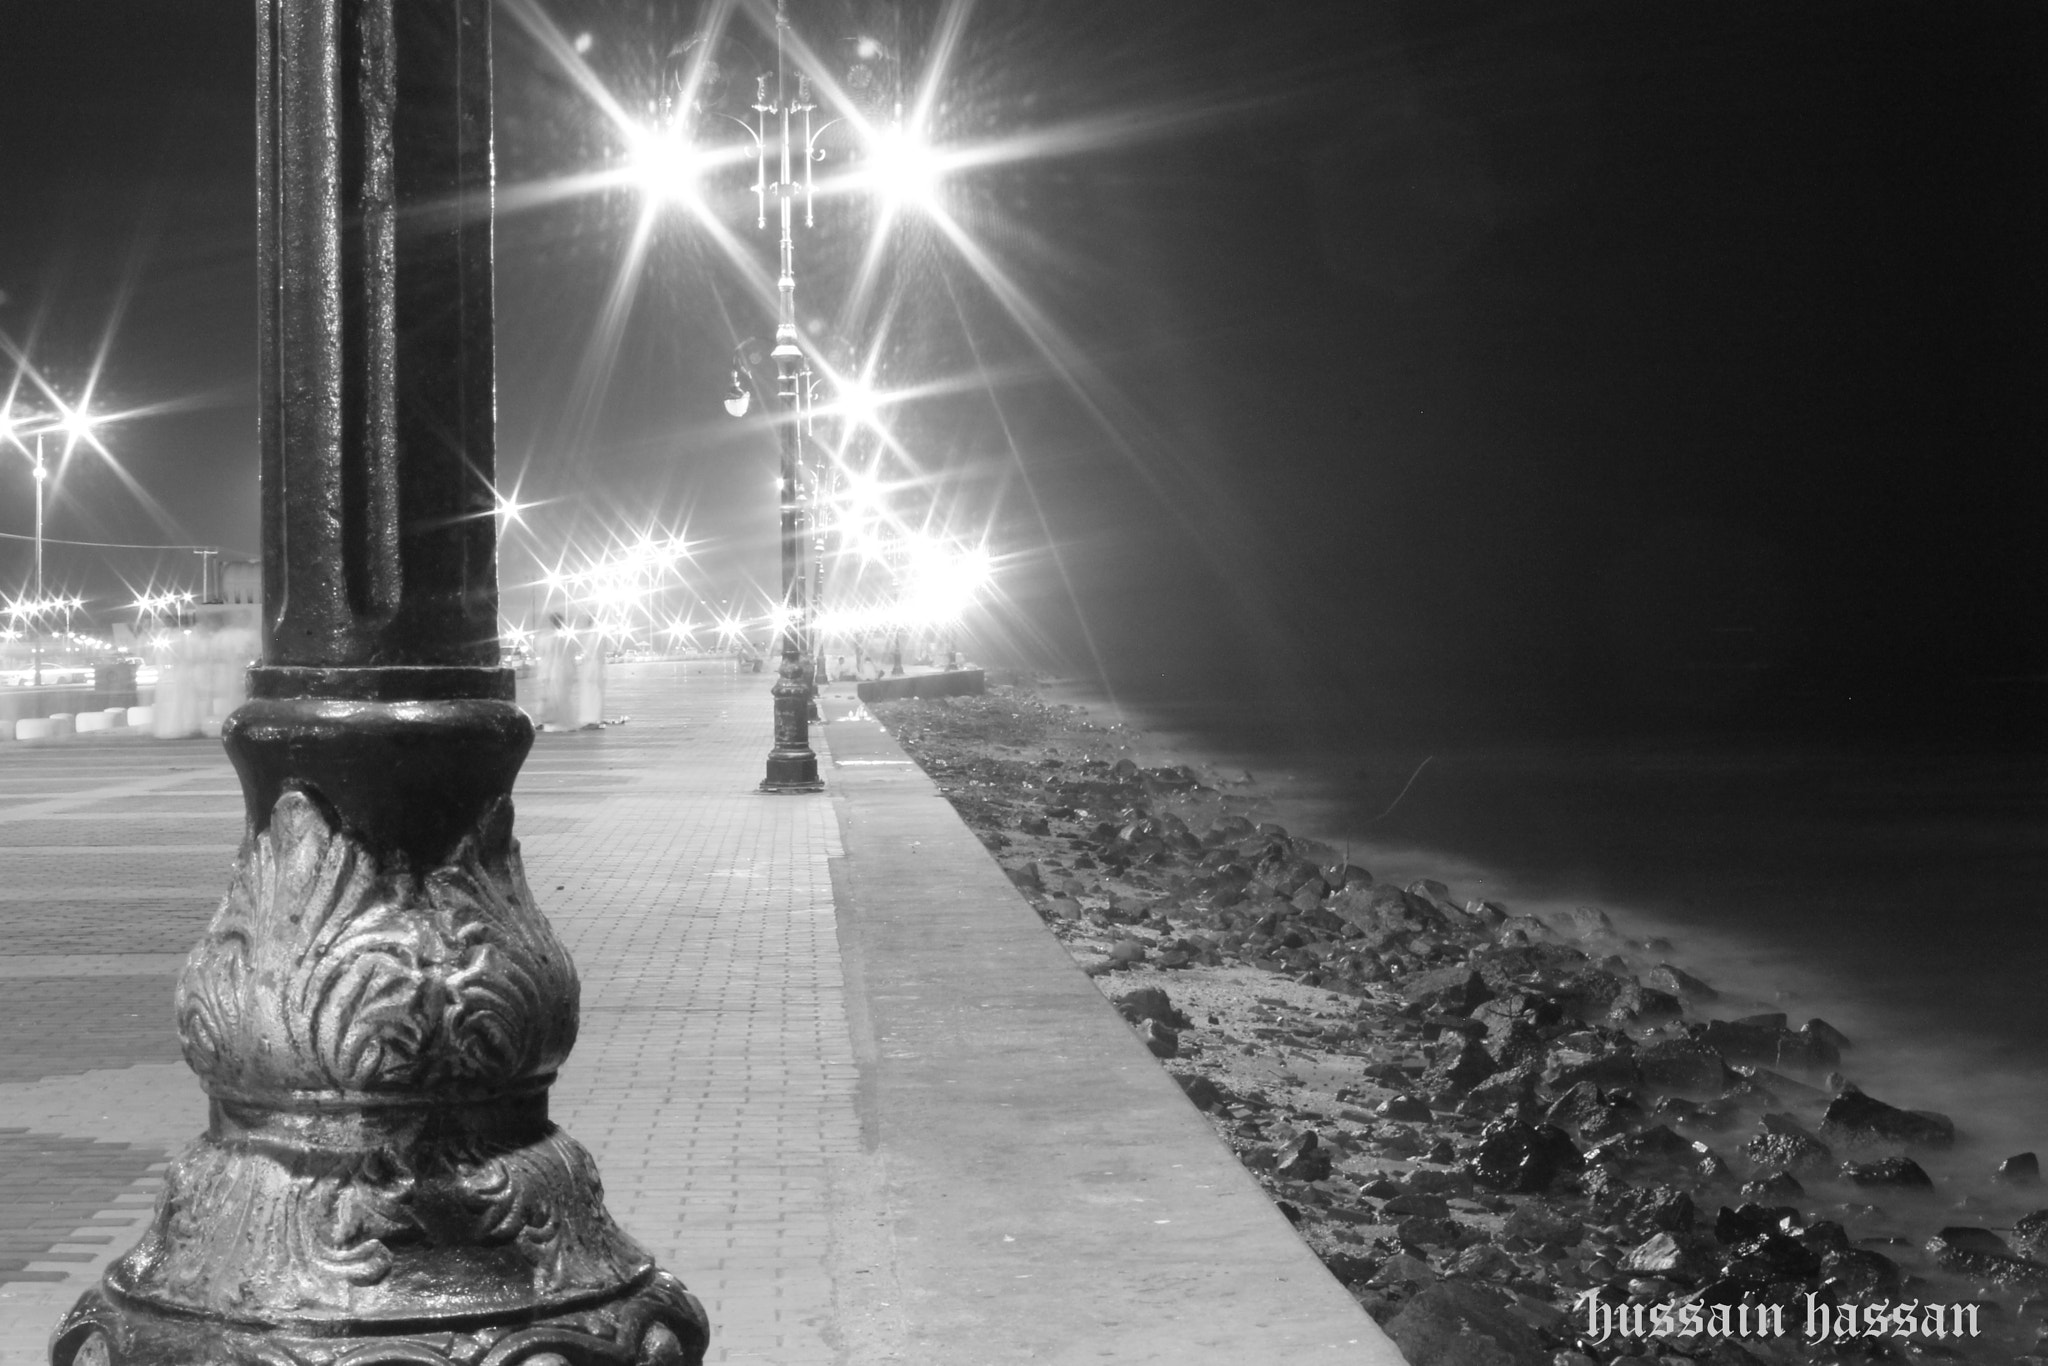 Photograph Night life at the beach by Hussain Shaikh on 500px